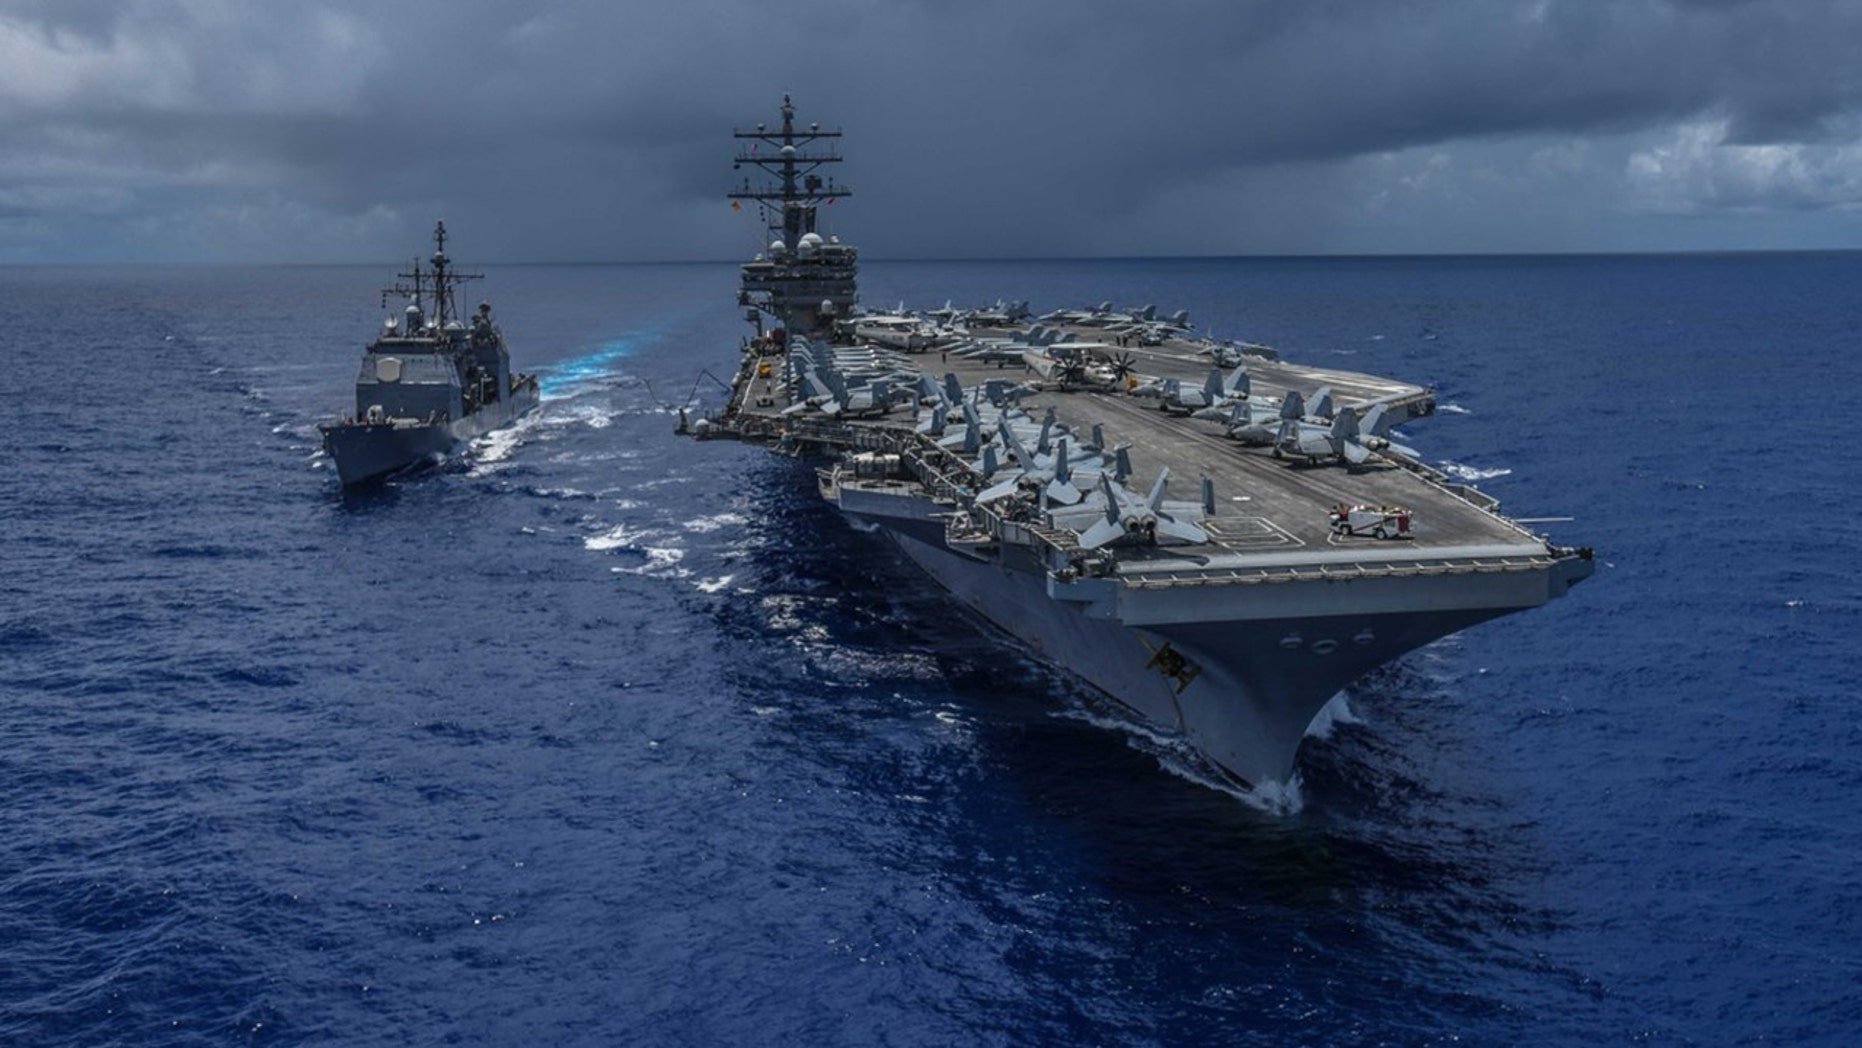 A U.S. Navy helicopter crashed on the flight deck of the USS Ronald Reagan in the Philippine Sea early Friday, injuring several sailors.